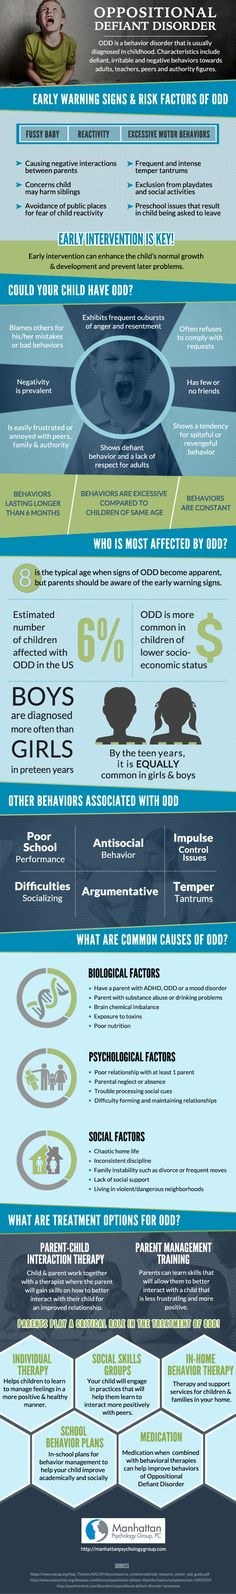 How is a parent to know what is normal age appropriate defiant behavior or if their child is displaying signs of Oppositional Defiant Disorder? This infographic from Manhattan Psychology Group is meant to bring awareness to ODD and help parents understand what to look for in their child's behavior that can be signs of the disorder. Because early intervention is key to treatment, we hope to help parents who may be dealing with a defiant child.